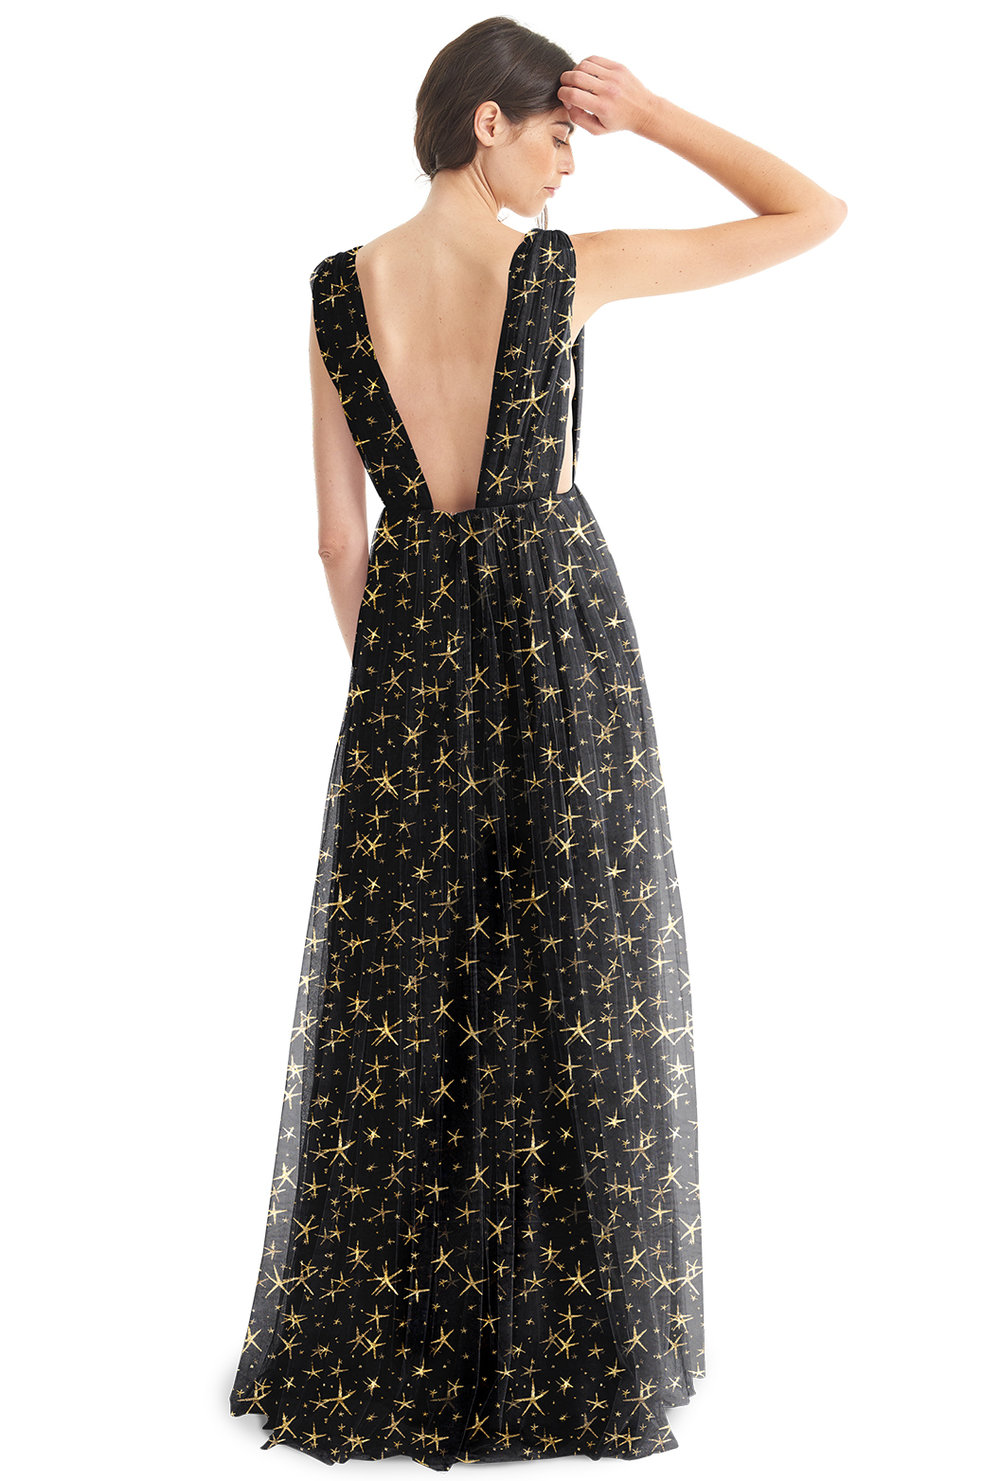 Michelle dress in black star tulle by Joanna August